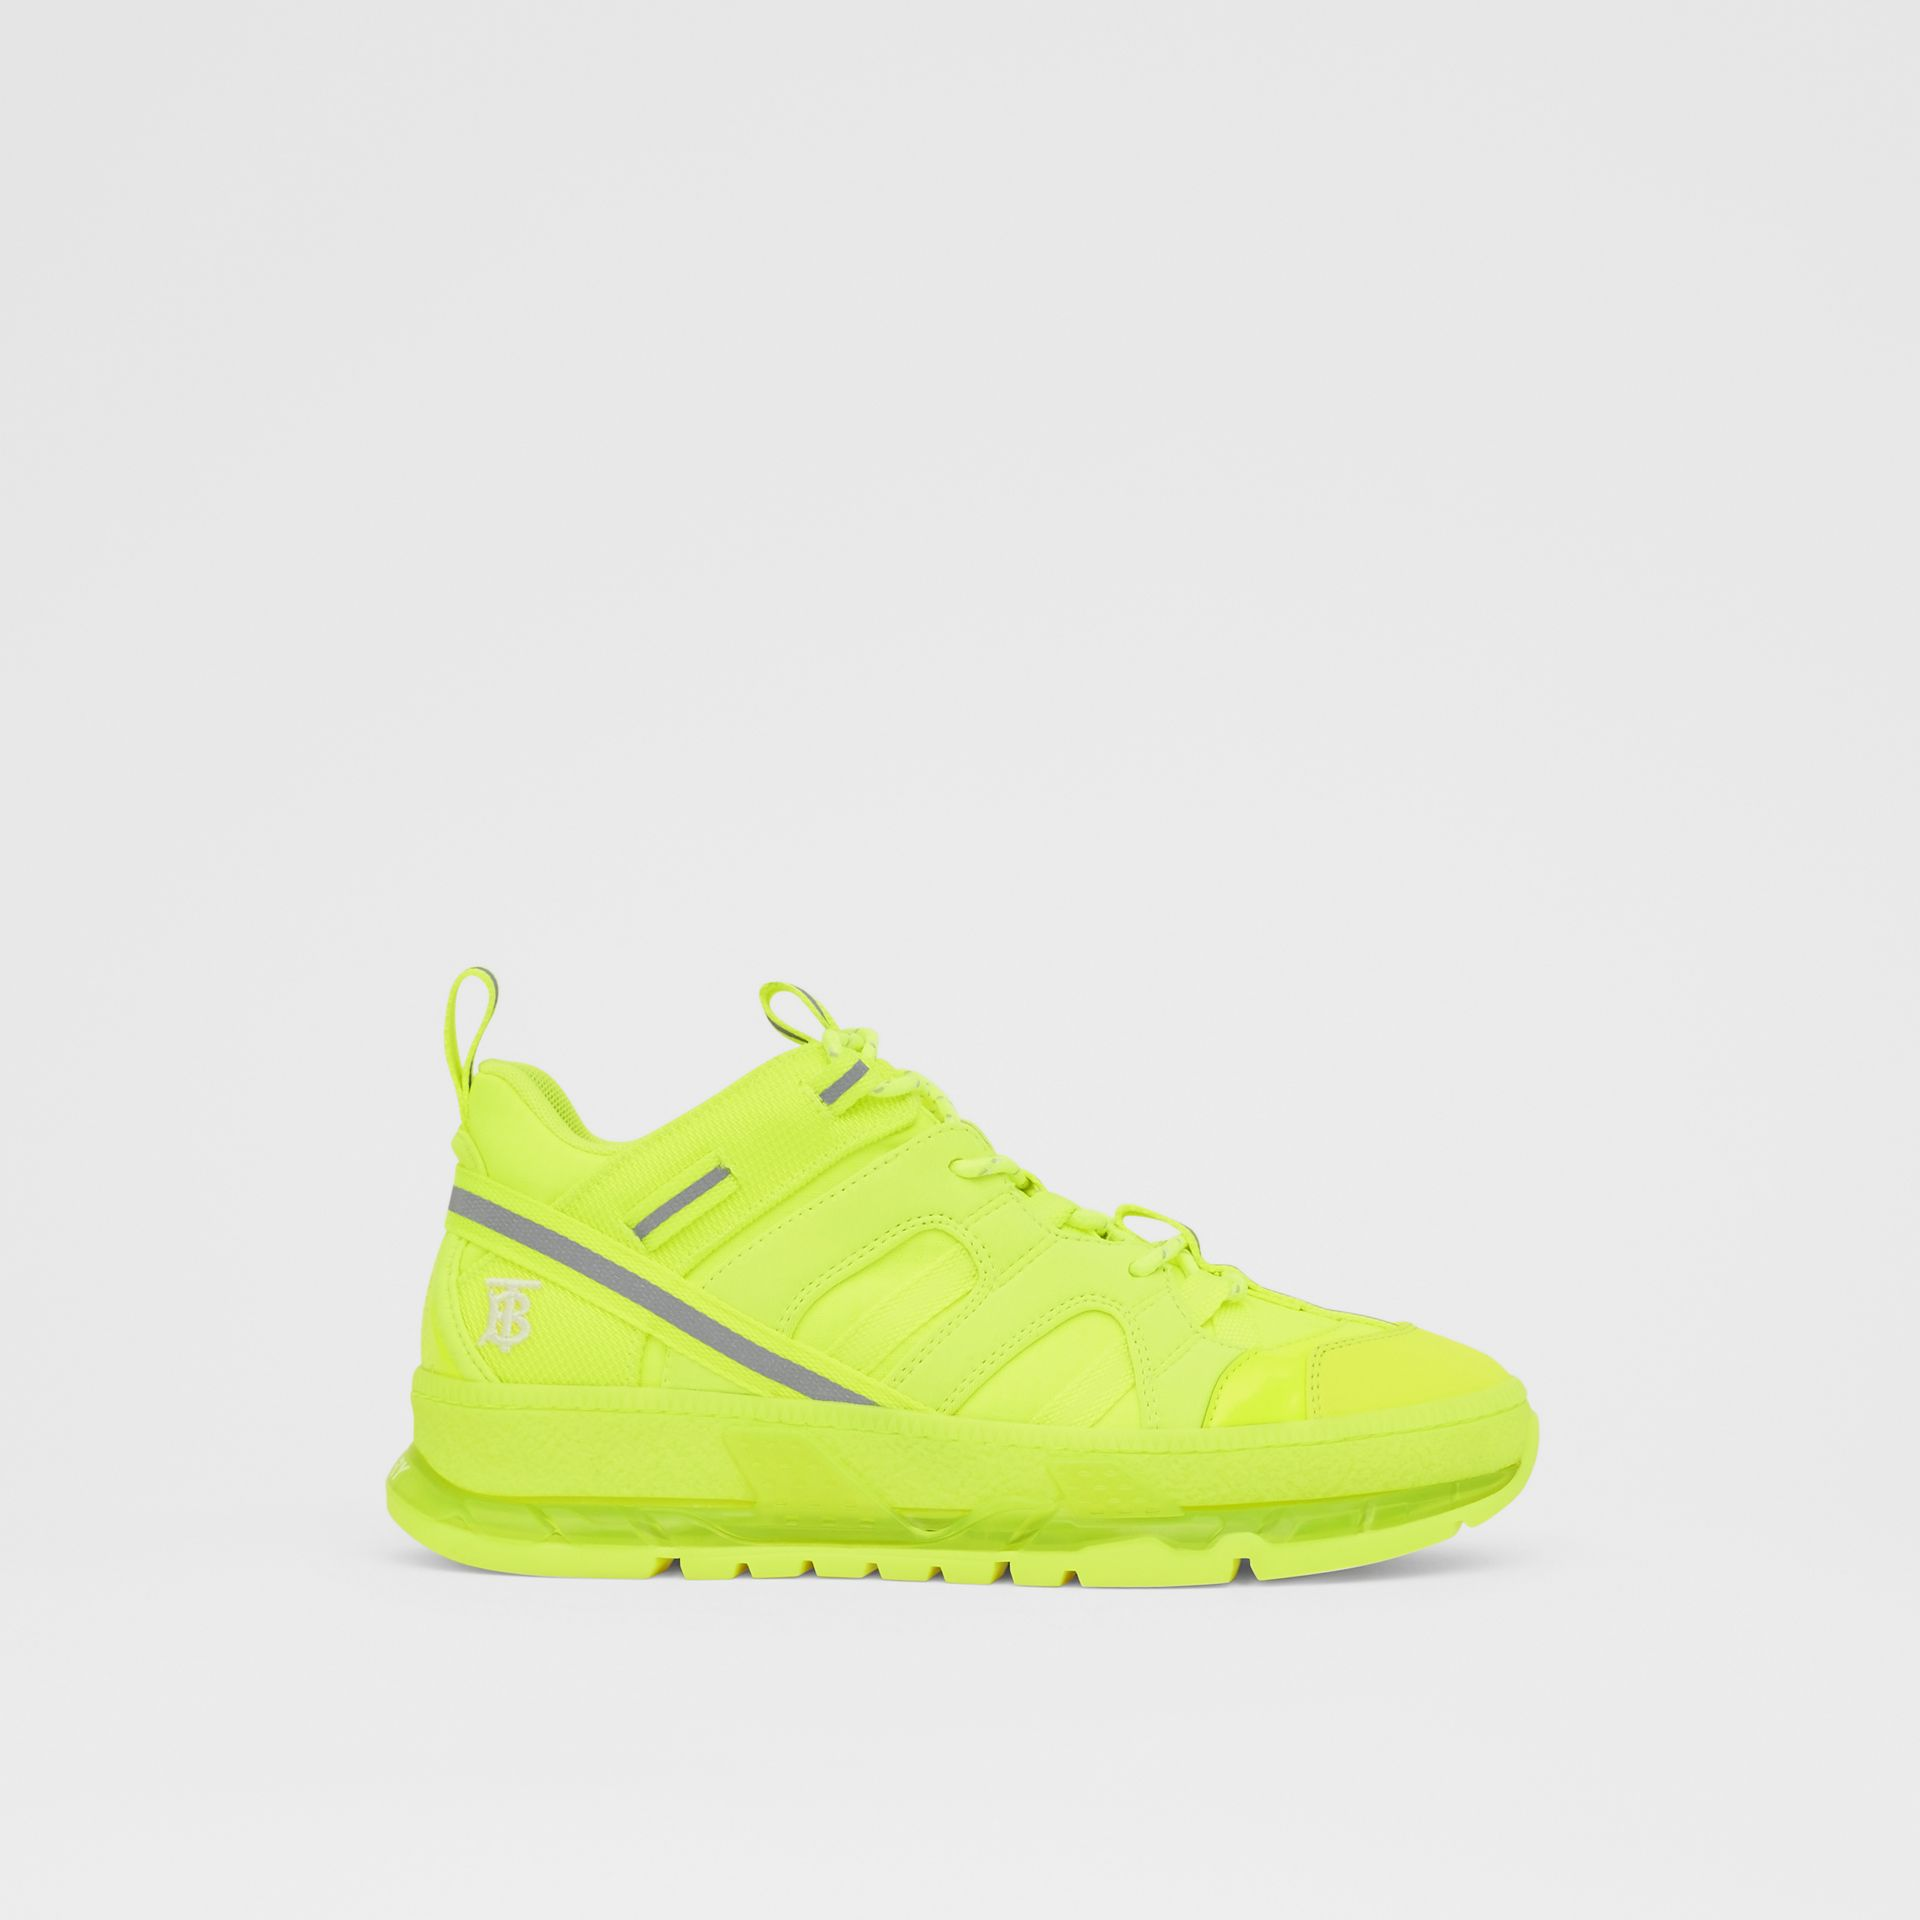 Nylon and Cotton Union Sneakers in Fluorescent Yellow - Women | Burberry - gallery image 5